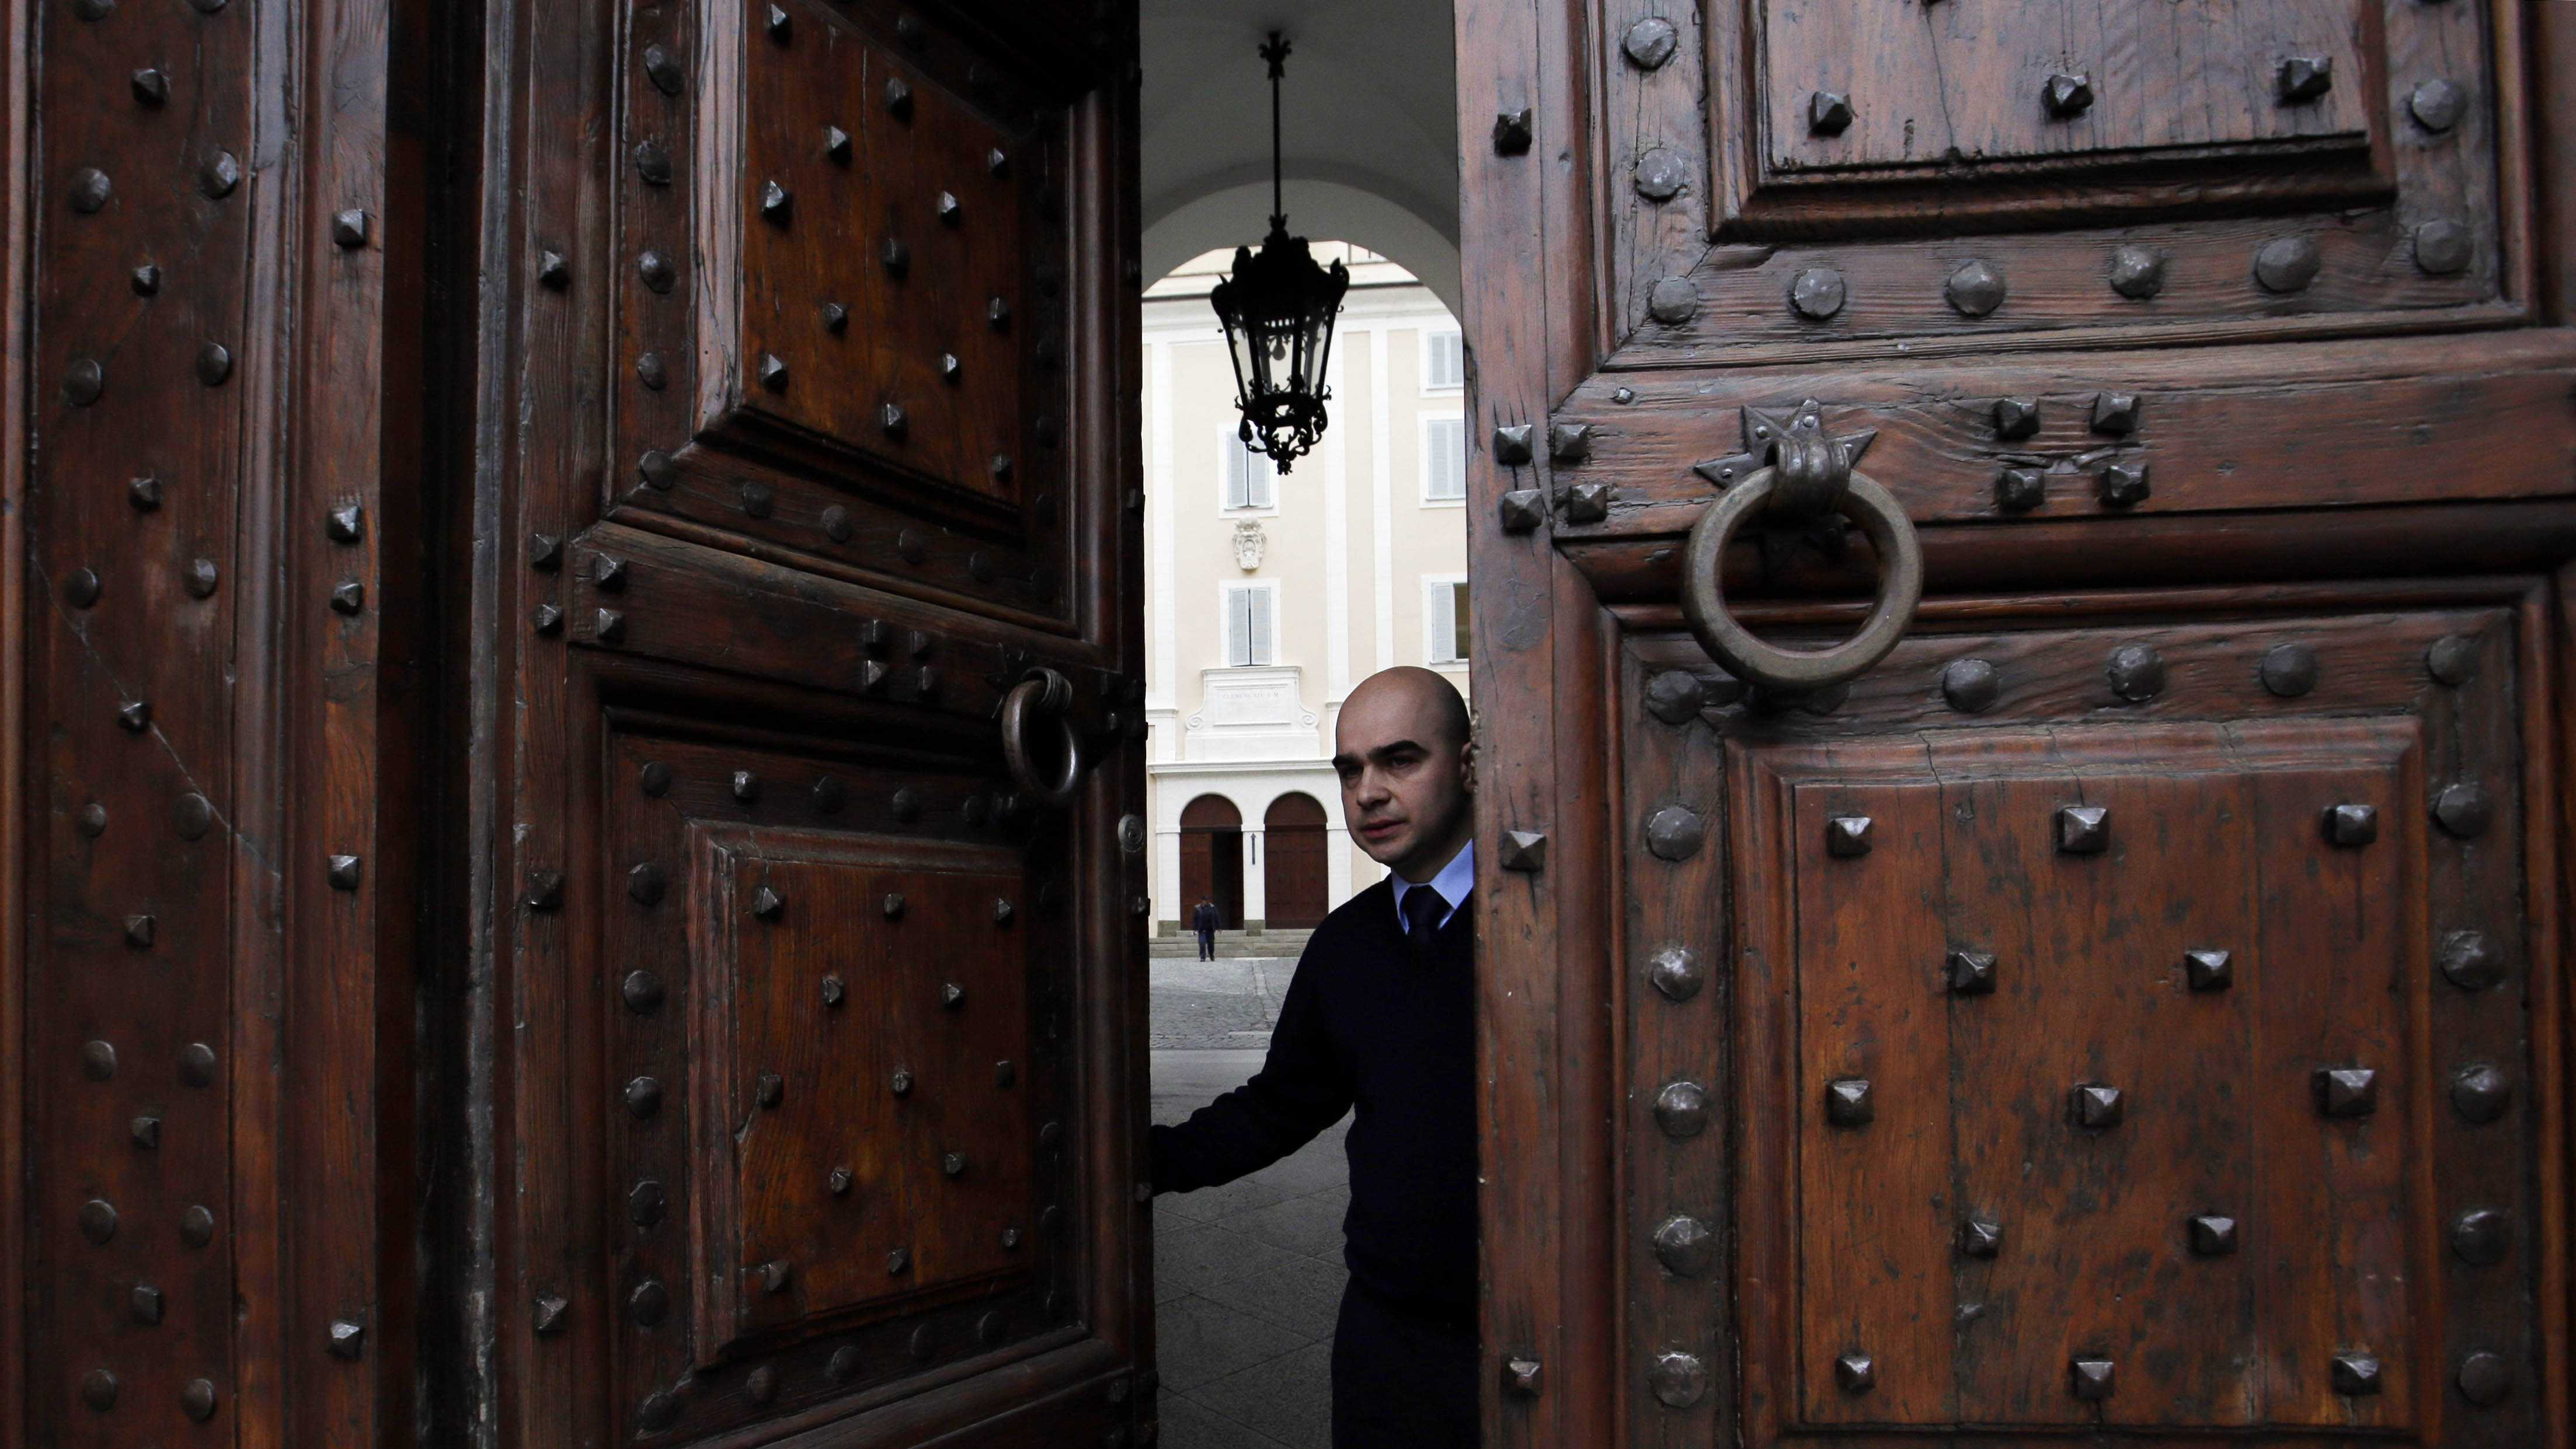 Vatican usher closes the main door of pope's summer residence of Castel Gandolfo